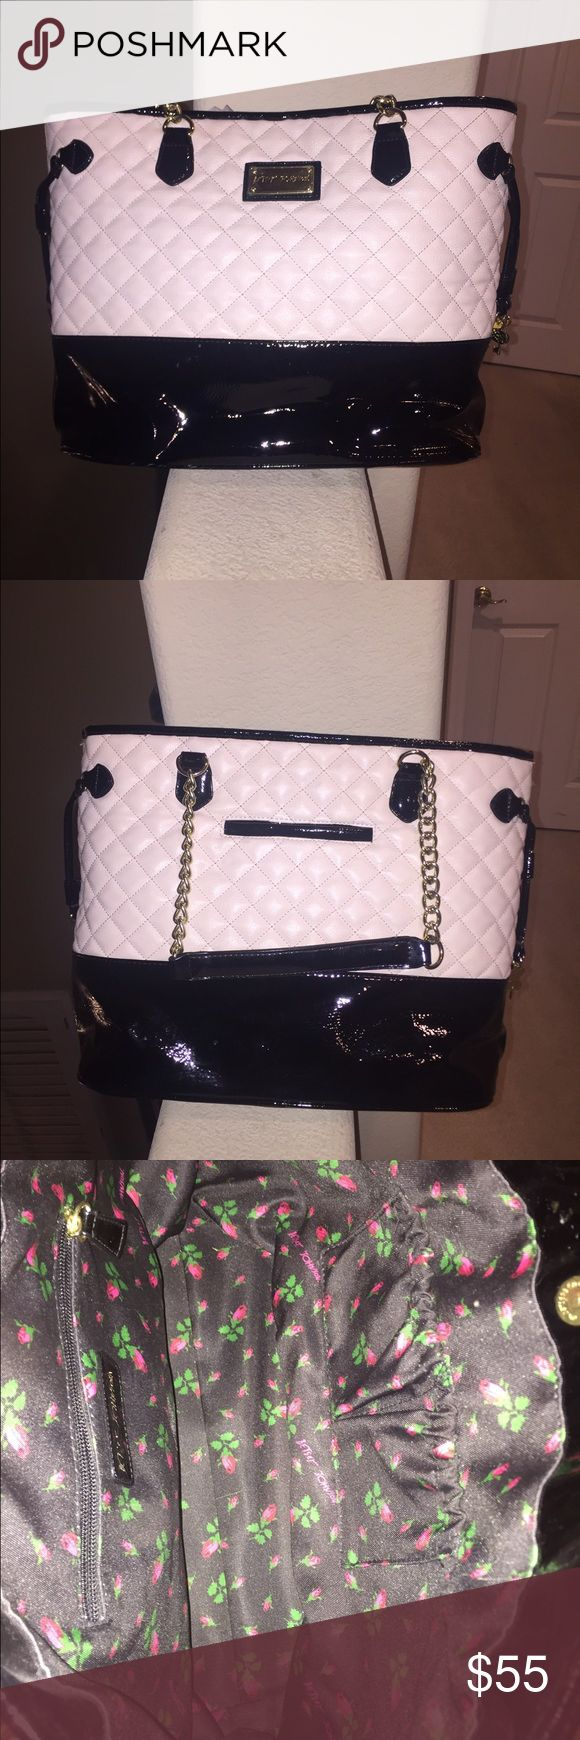 Betsey Johnson two tone patent leather purse Two tone ( beige and black) patent leather quilted purse Betsey Johnson Bags